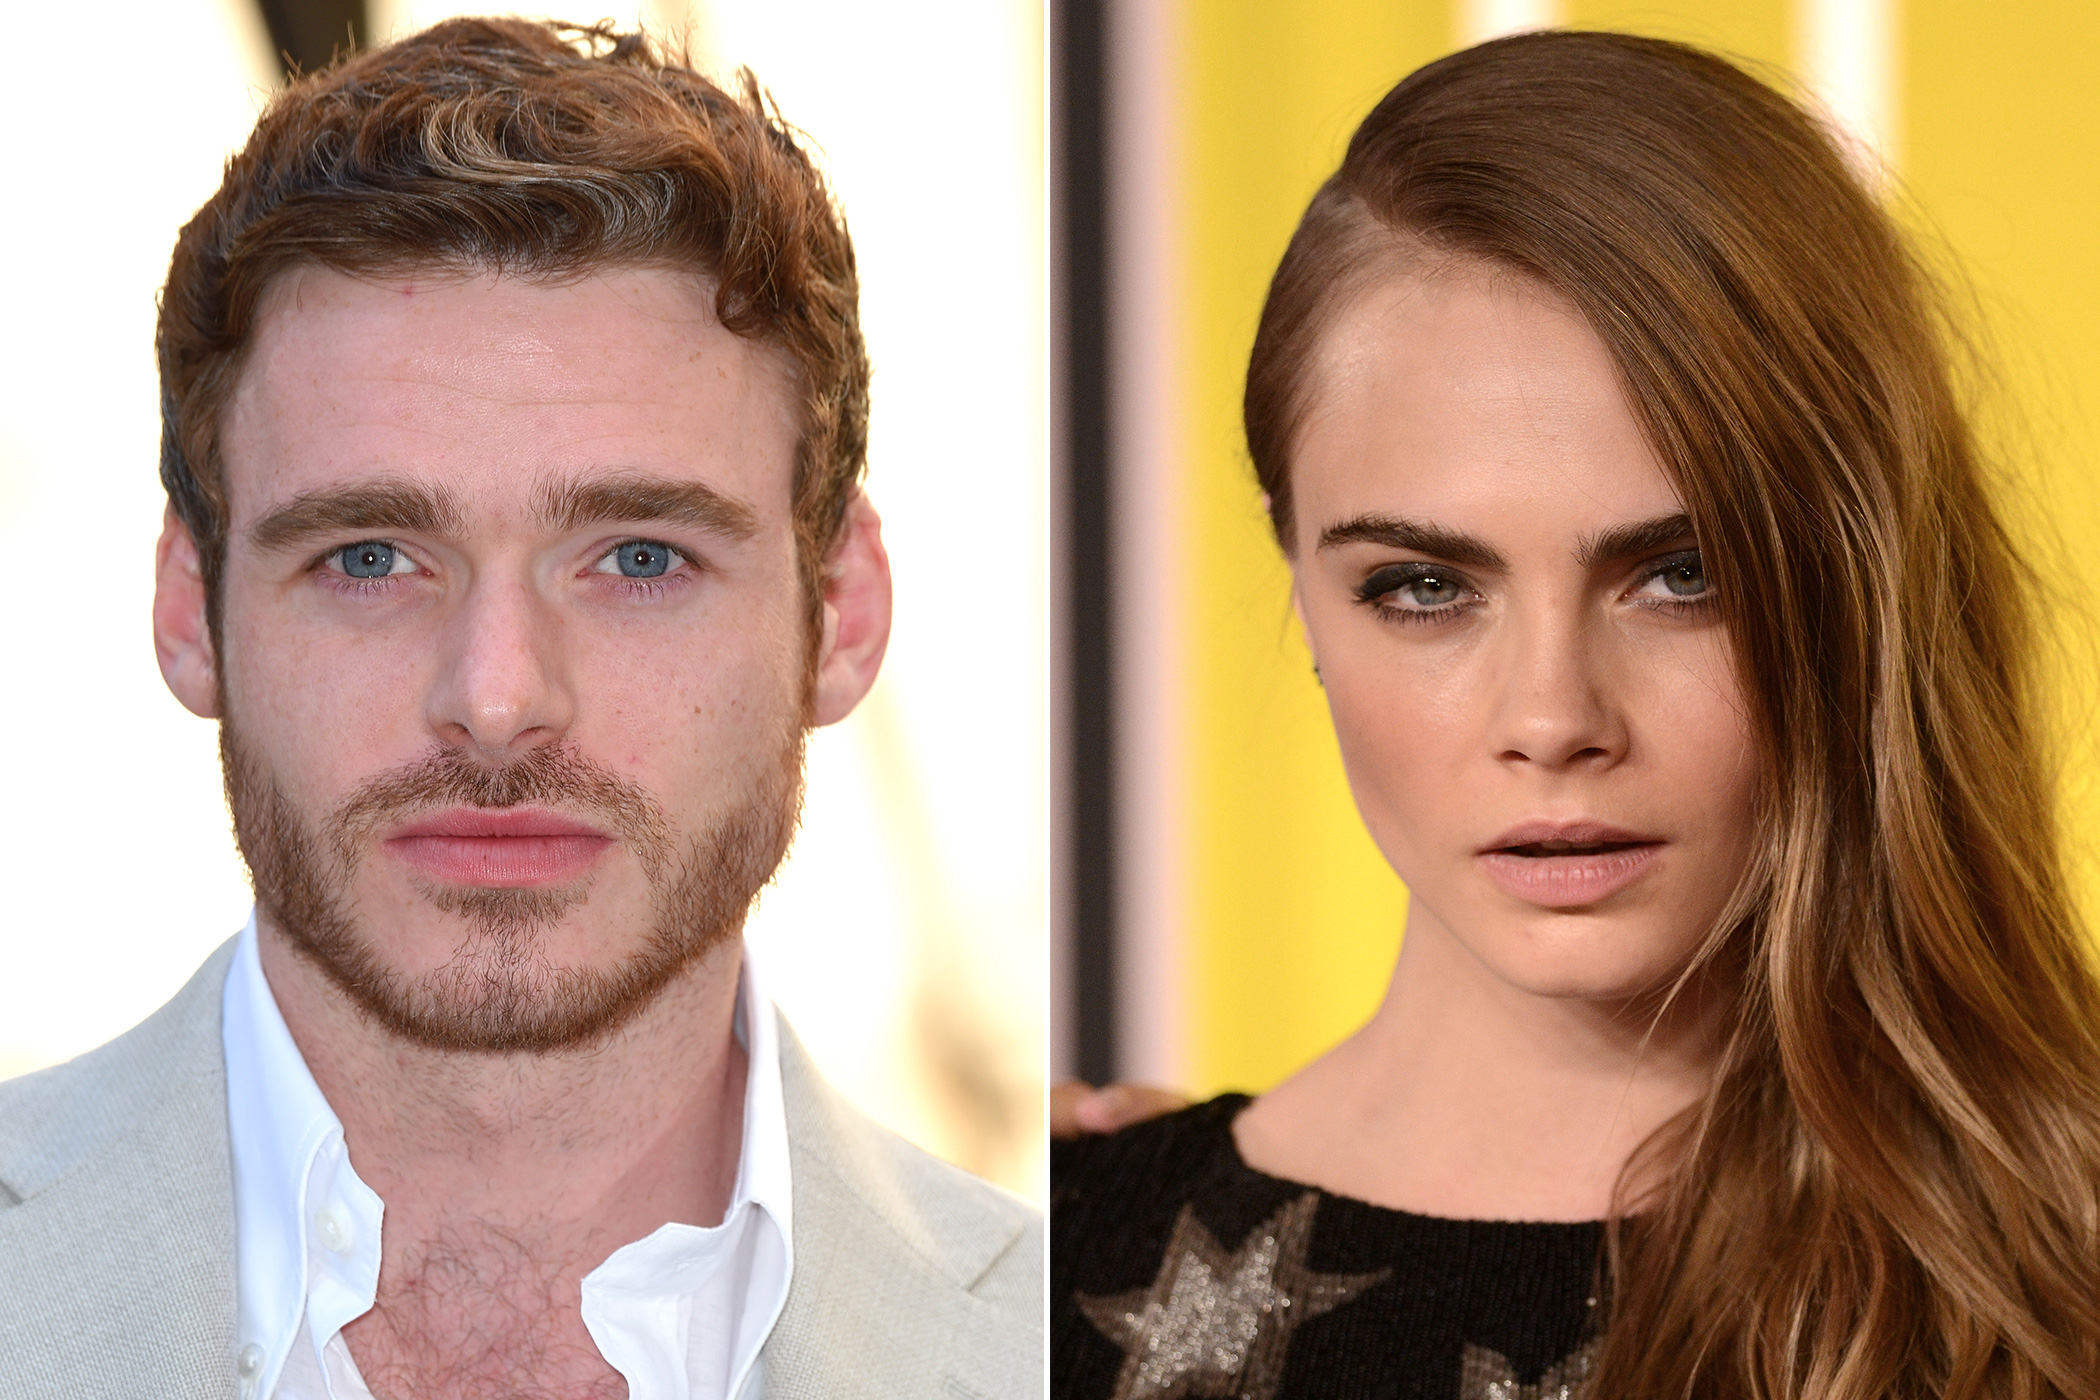 Left: Richard Madden attends the Royal Academy of Arts Summer Exhibition at the Royal Academy on June 3, 2015 in London; Right: Cara Delevingne arrives to the 2015 MTV Video Music Awards at Microsoft Theater on Aug. 30, 2015 in Los Angeles